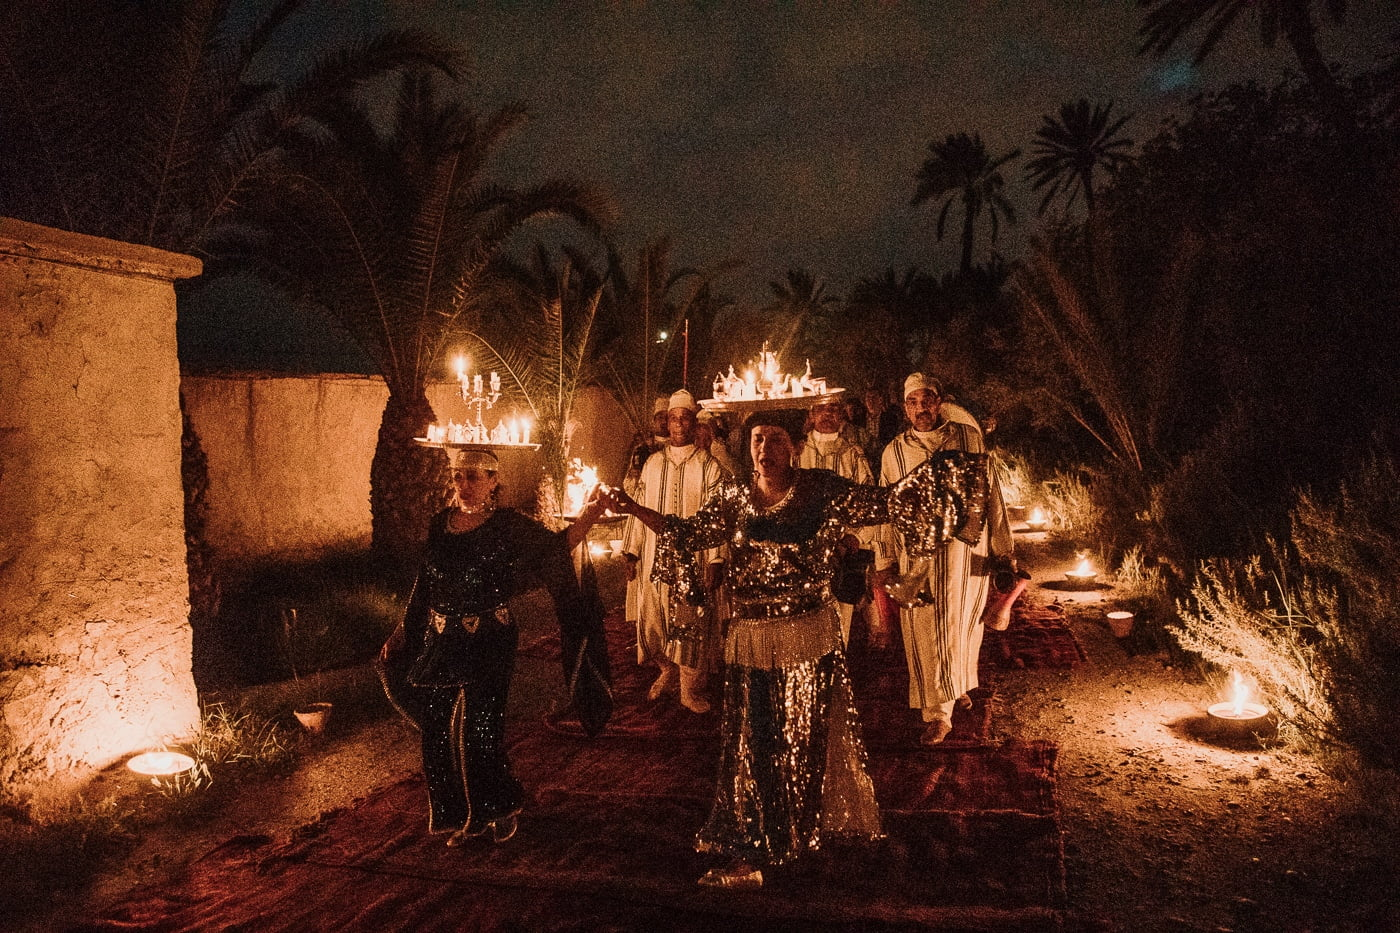 You've Found The Event Planning Coordinator in Marrakech